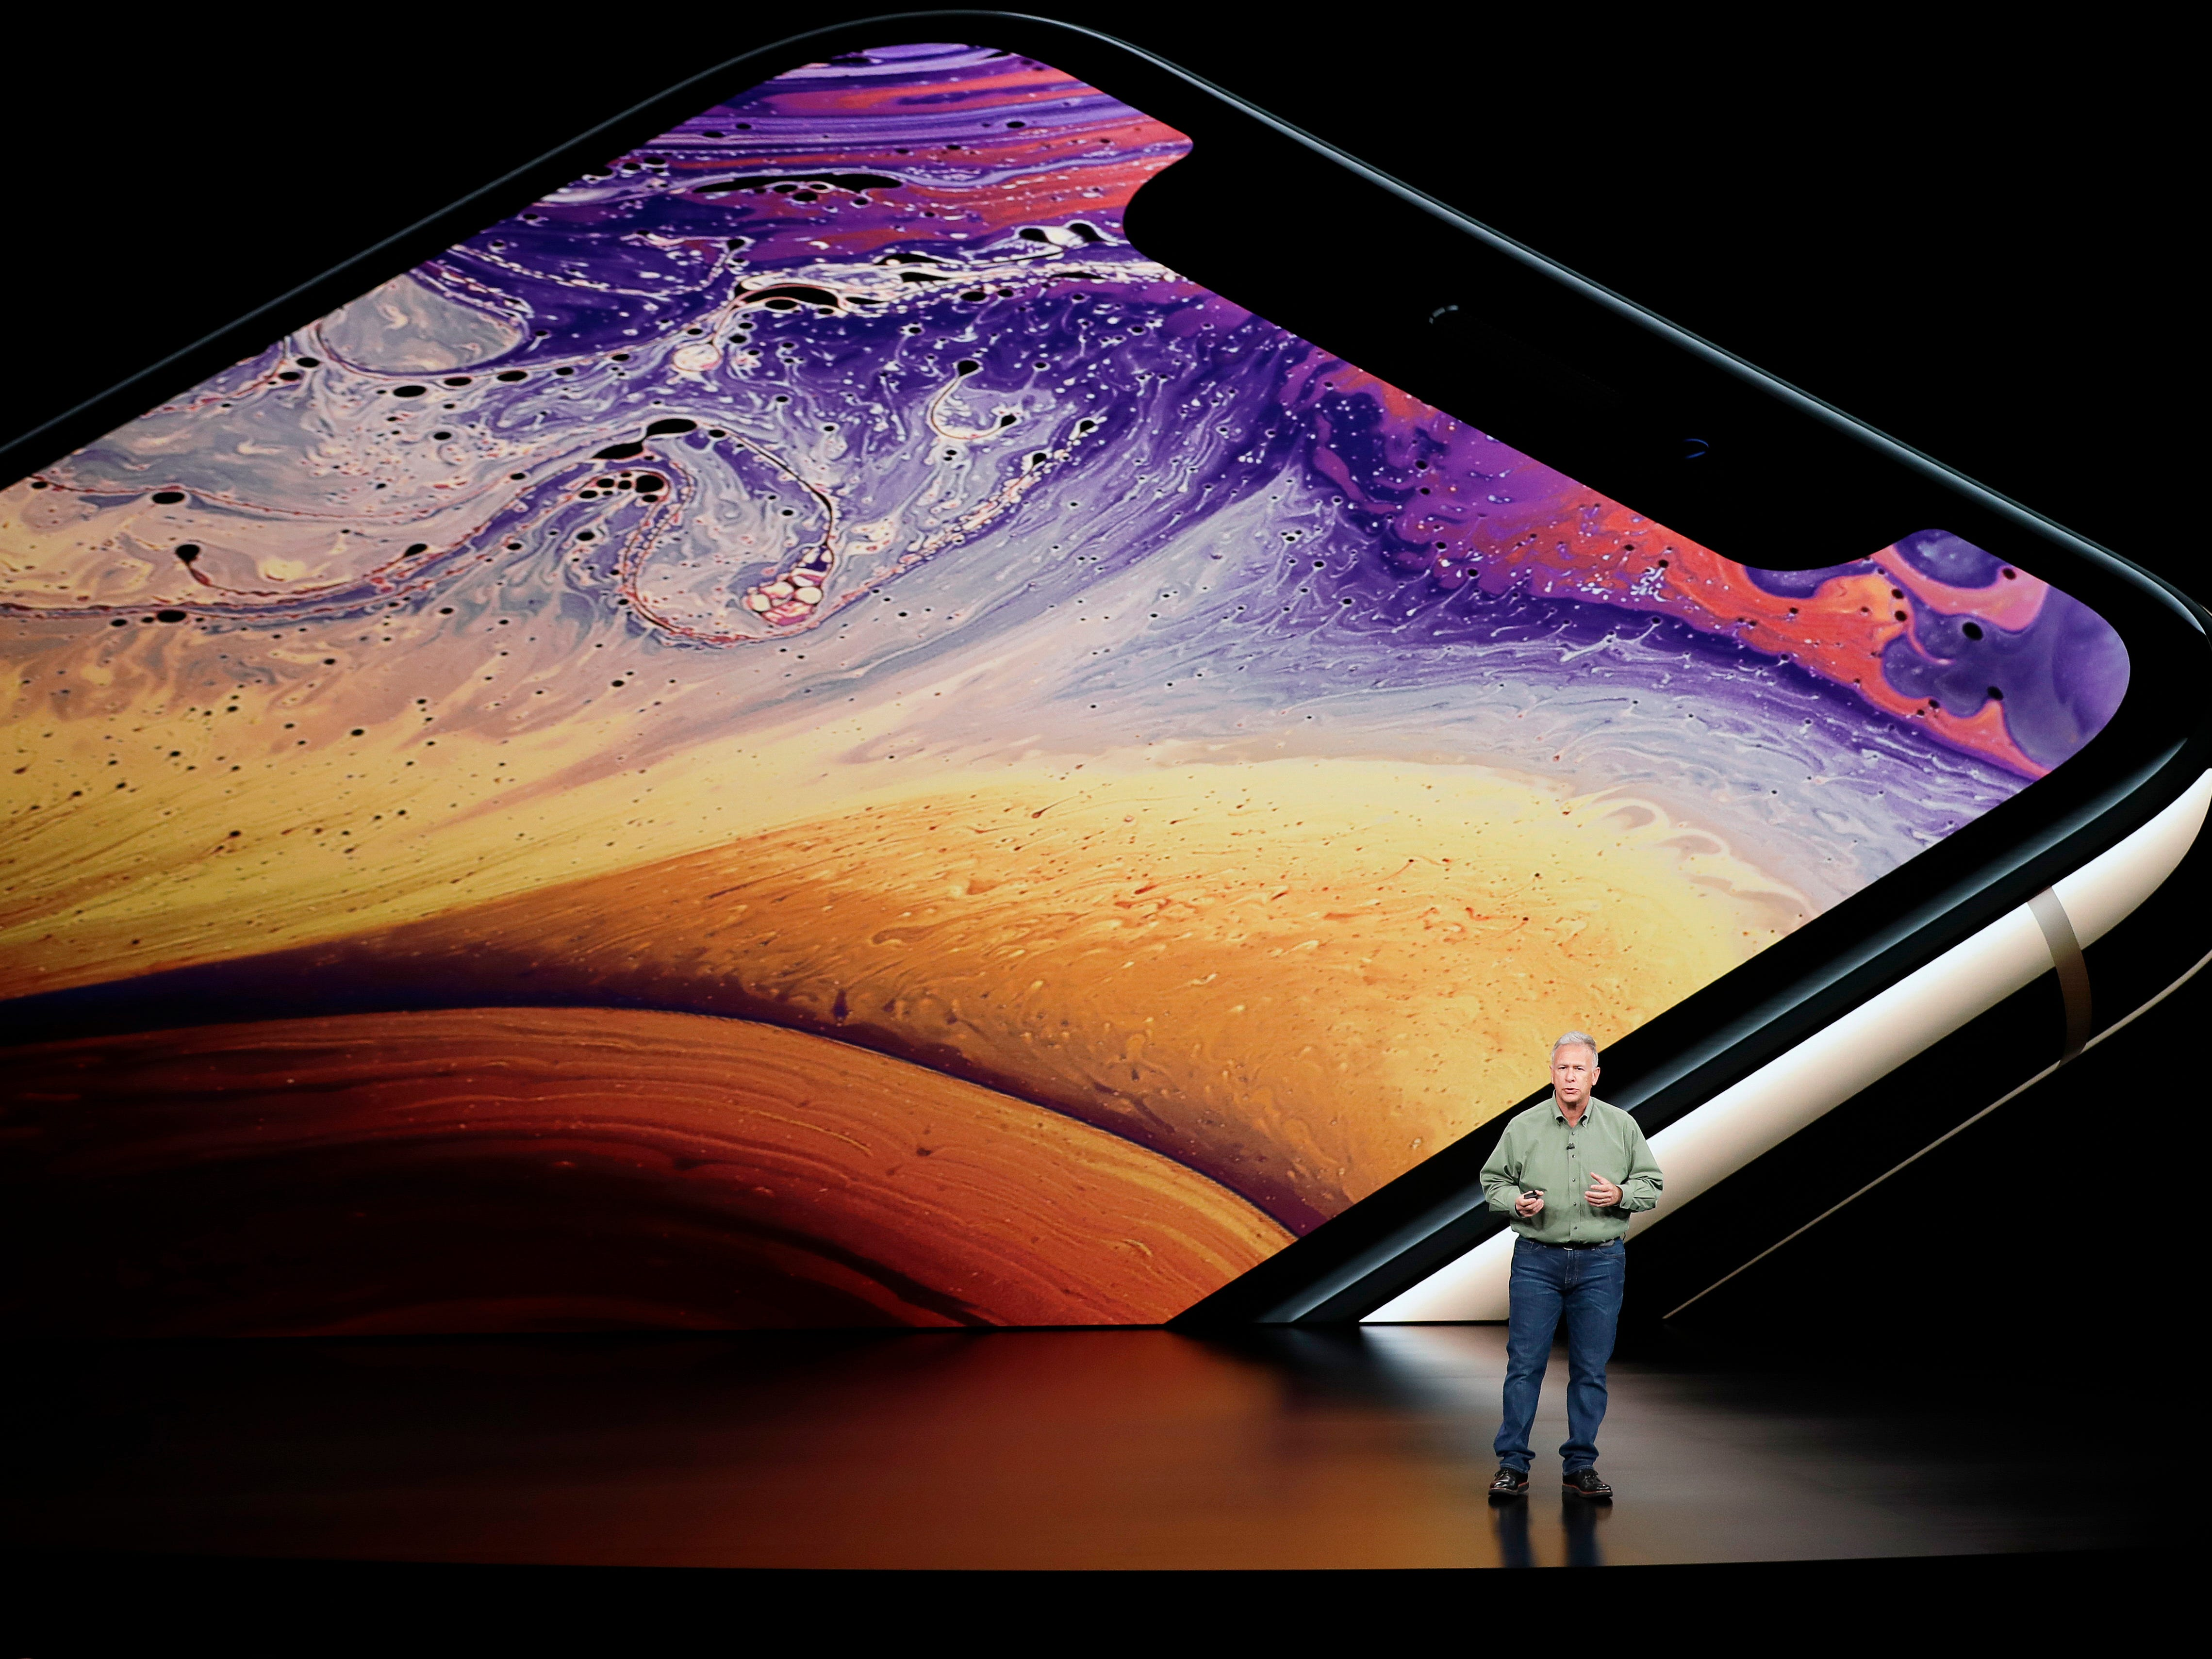 Phil Schiller, Apple's senior vice president of worldwide marketing, speaks about the Apple iPhone XS at the Steve Jobs Theater during an event to announce new Apple products Wednesday, Sept. 12, 2018, in Cupertino, Calif.